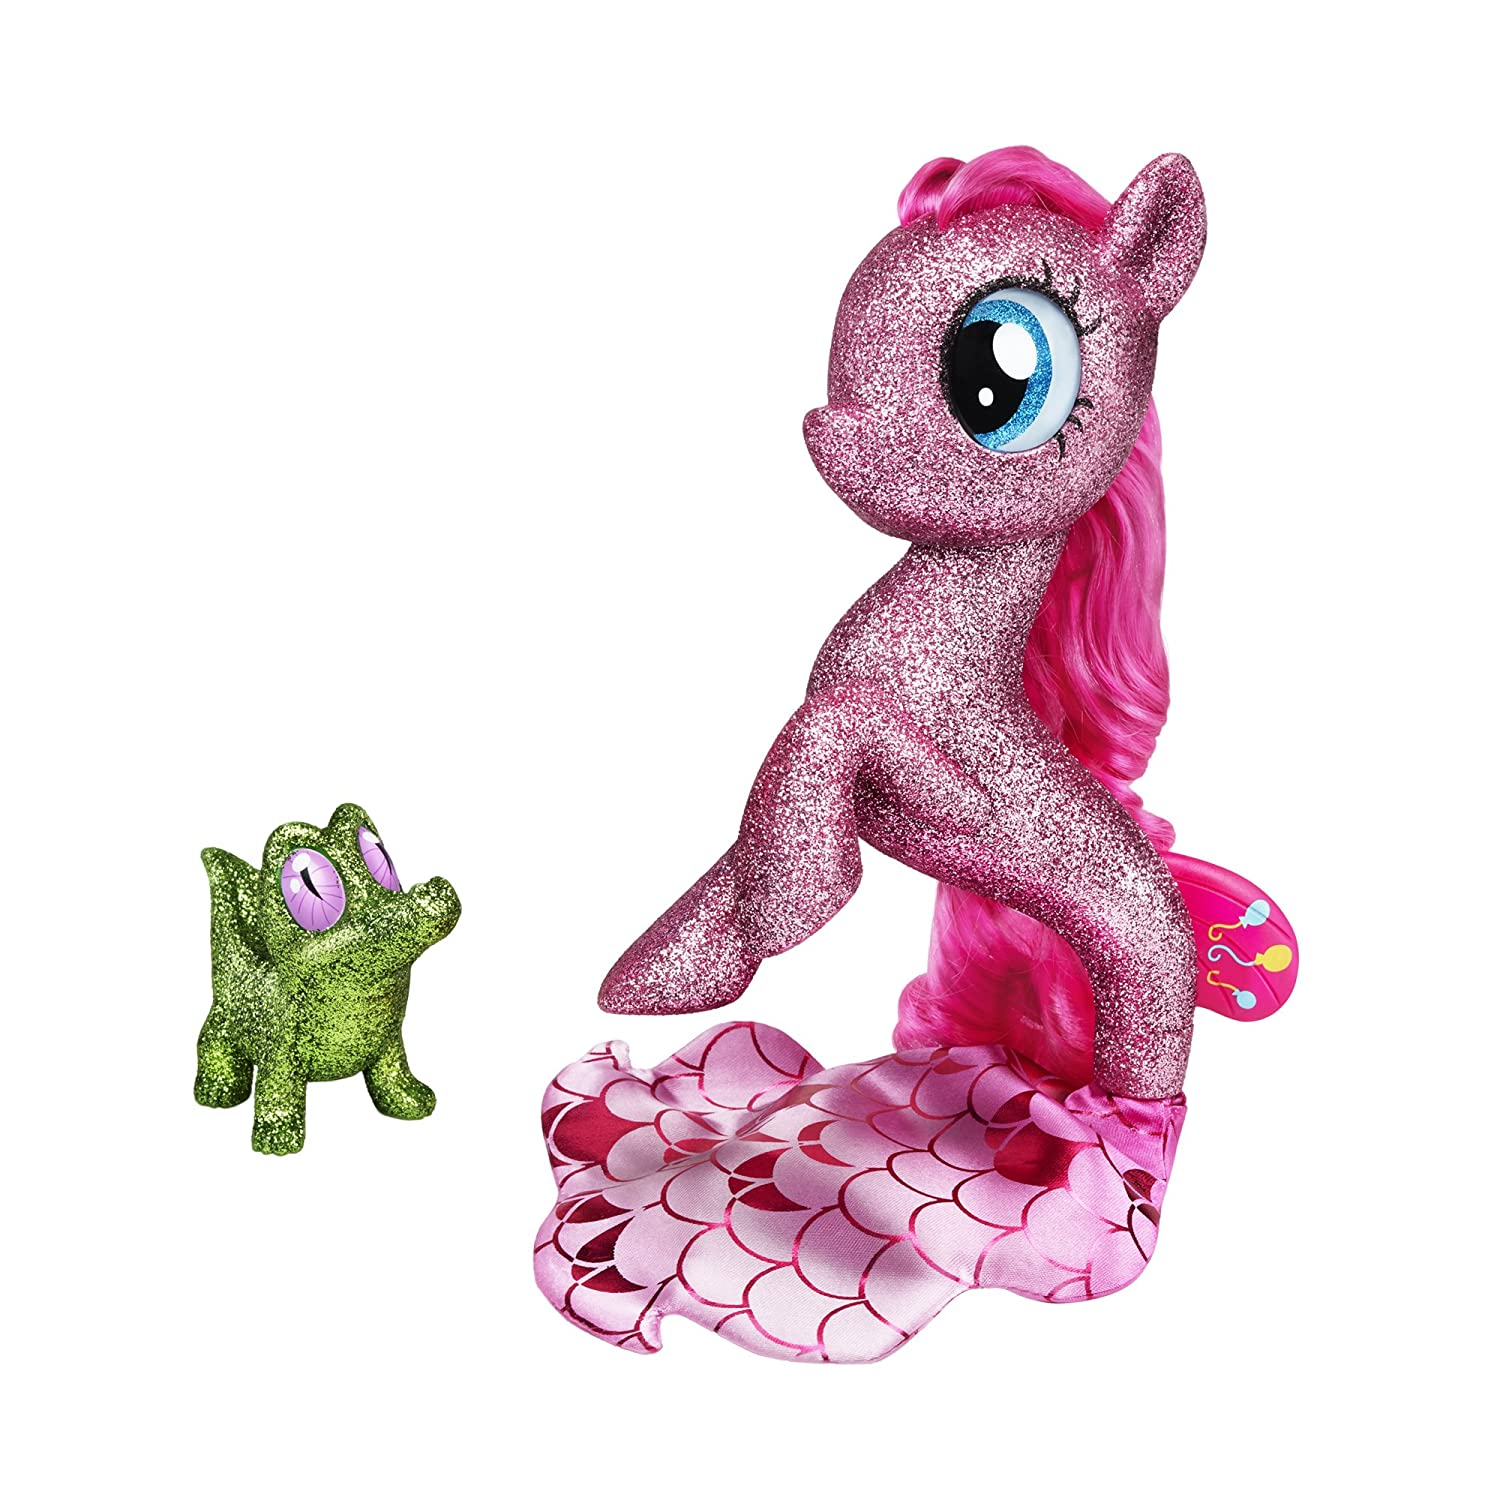 My Little Pony: The Movie Pinkie Pie Seapony Figure with Light-Up Base (Amazon Exclusive)